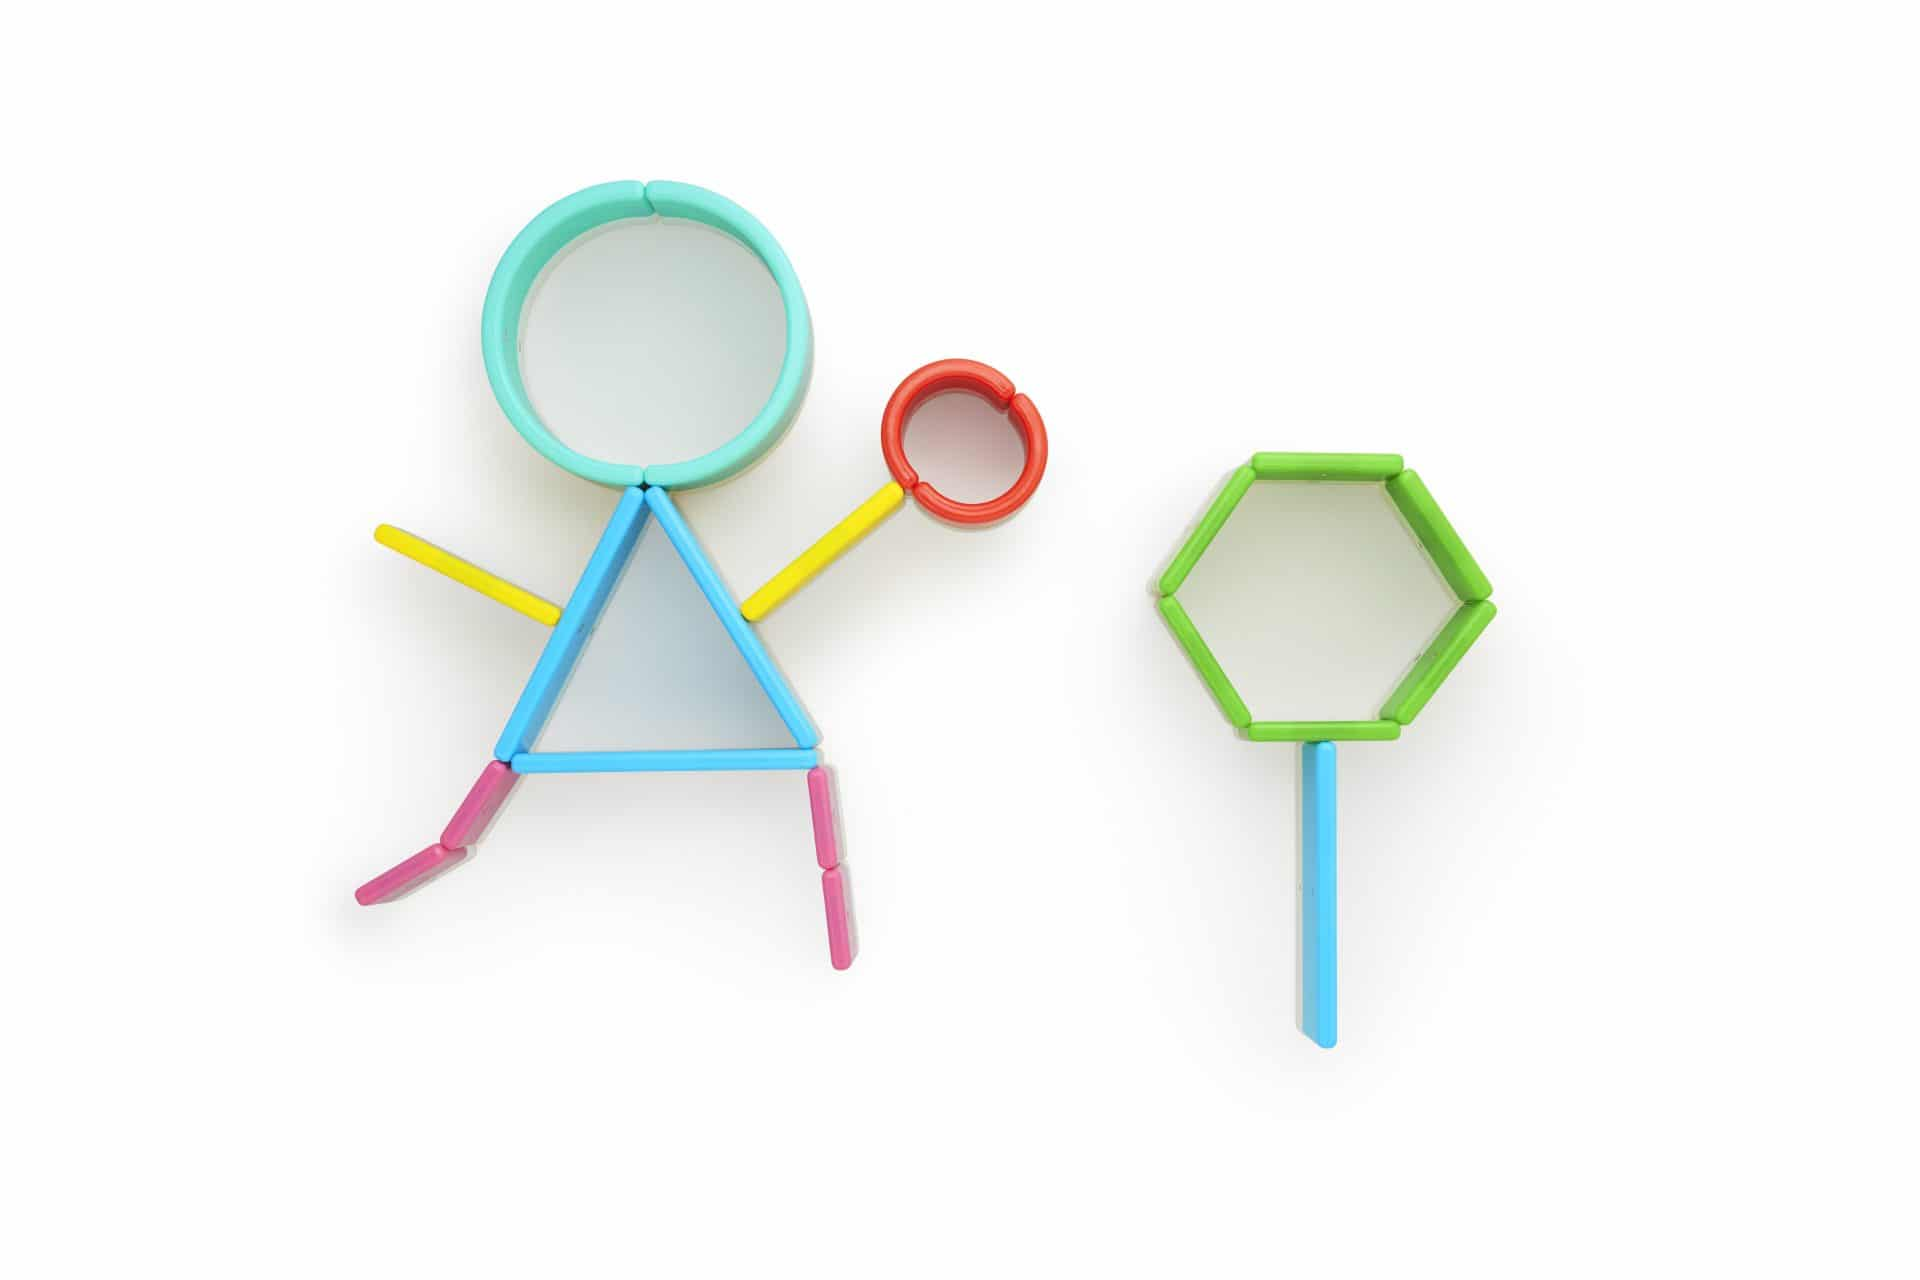 magnetic shapes to forming letters and free play